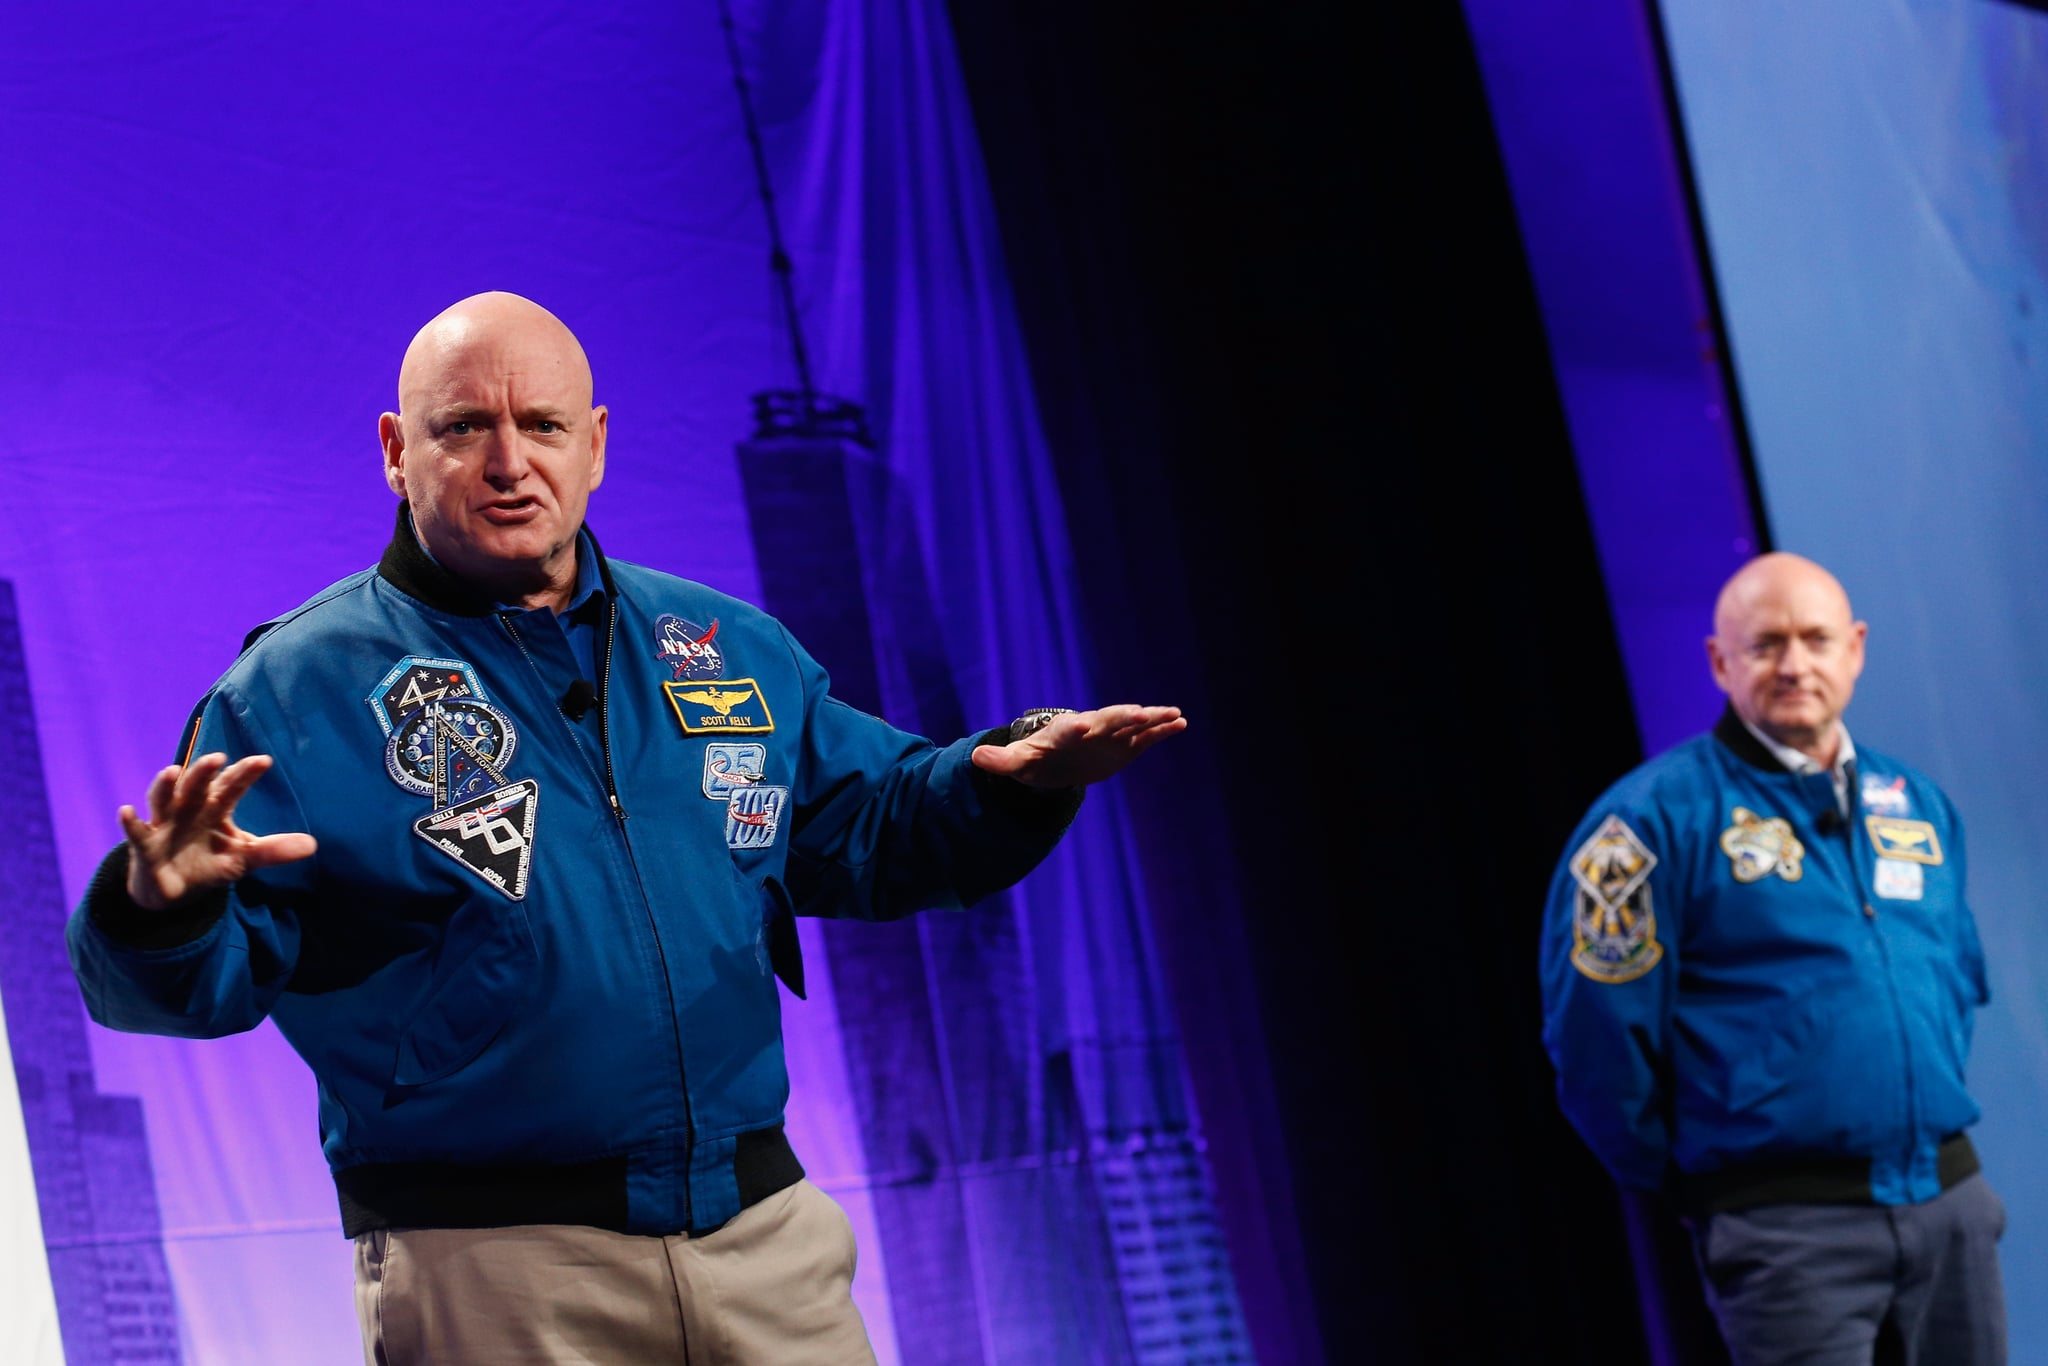 NEW YORK, NY - NOVEMBER 02:  Austronauts Captain Scott Kelly and Captain Mark Kelly speak on stage at LocationWorld 2016 Day 1 at The Conrad on November 2, 2016 in New York City.  (Photo by Brian Ach/Getty Images for LocationWorld 2016)